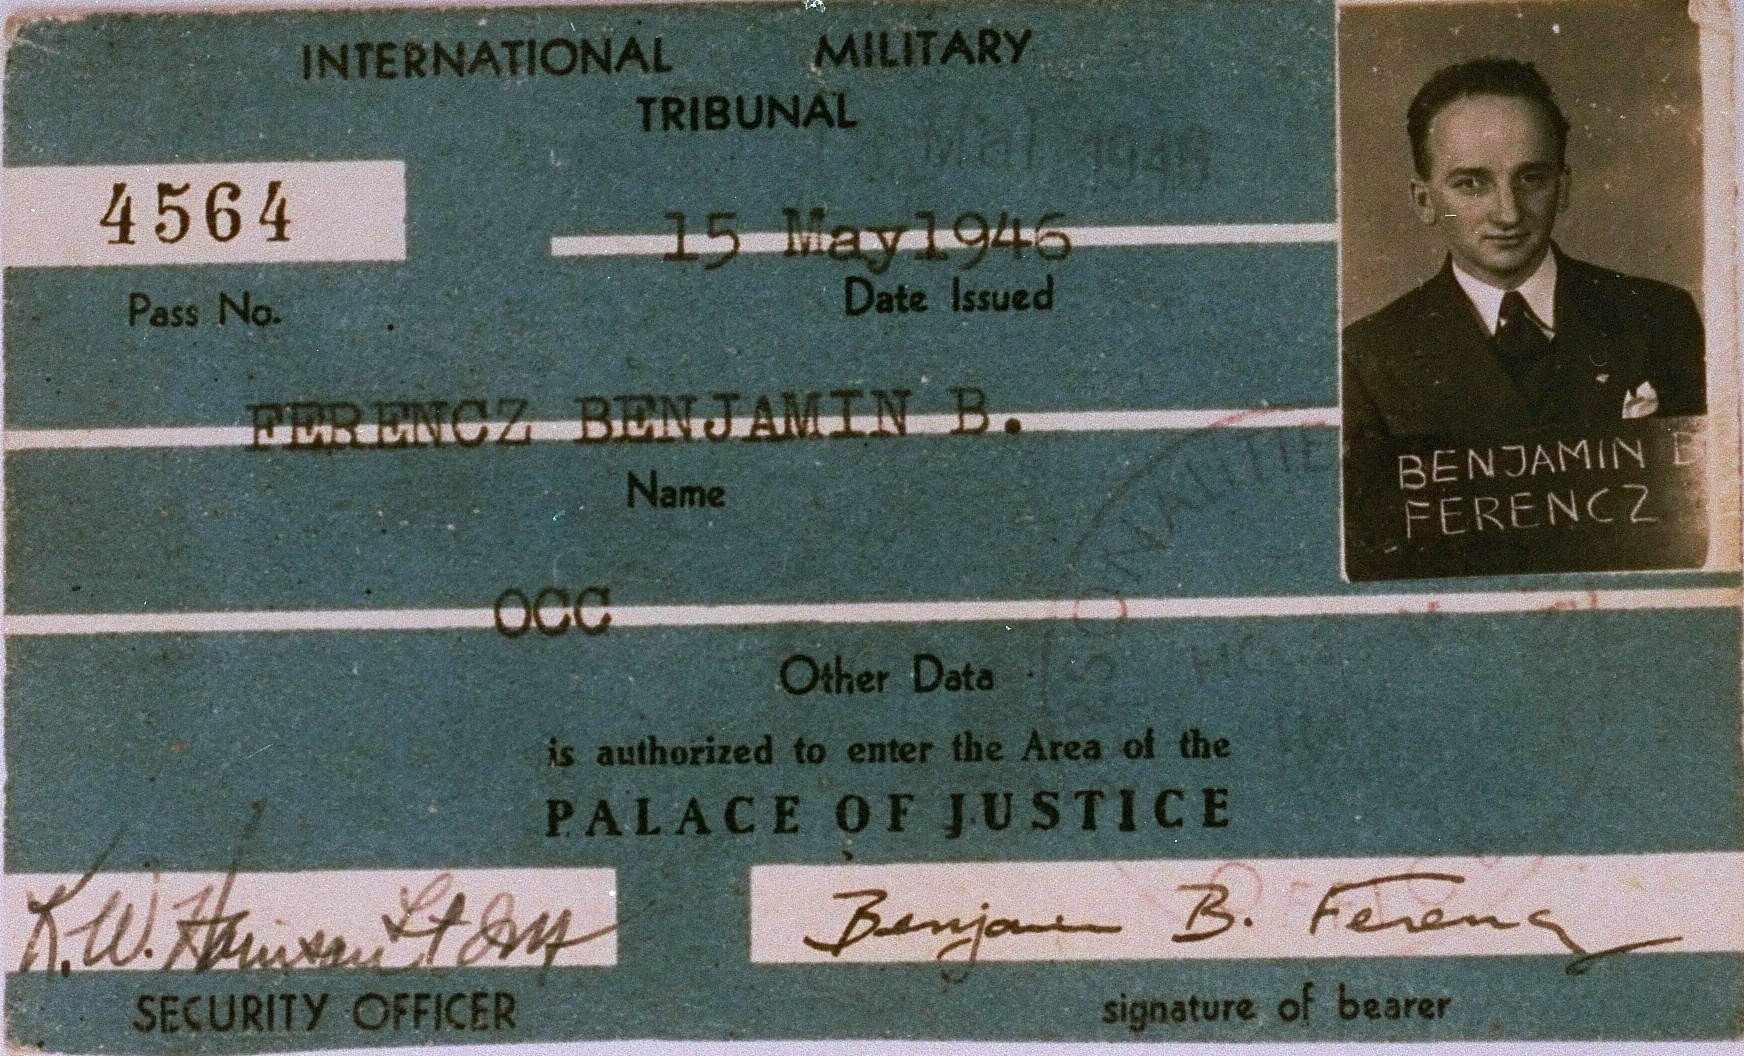 The International Military Tribunal identification card of Benjamin Ferencz, the chief prosecutor of the Einsatzgruppen Trial.<i>US Holocaust Memorial Museum, courtesy of Benjamin Ferencz</i>